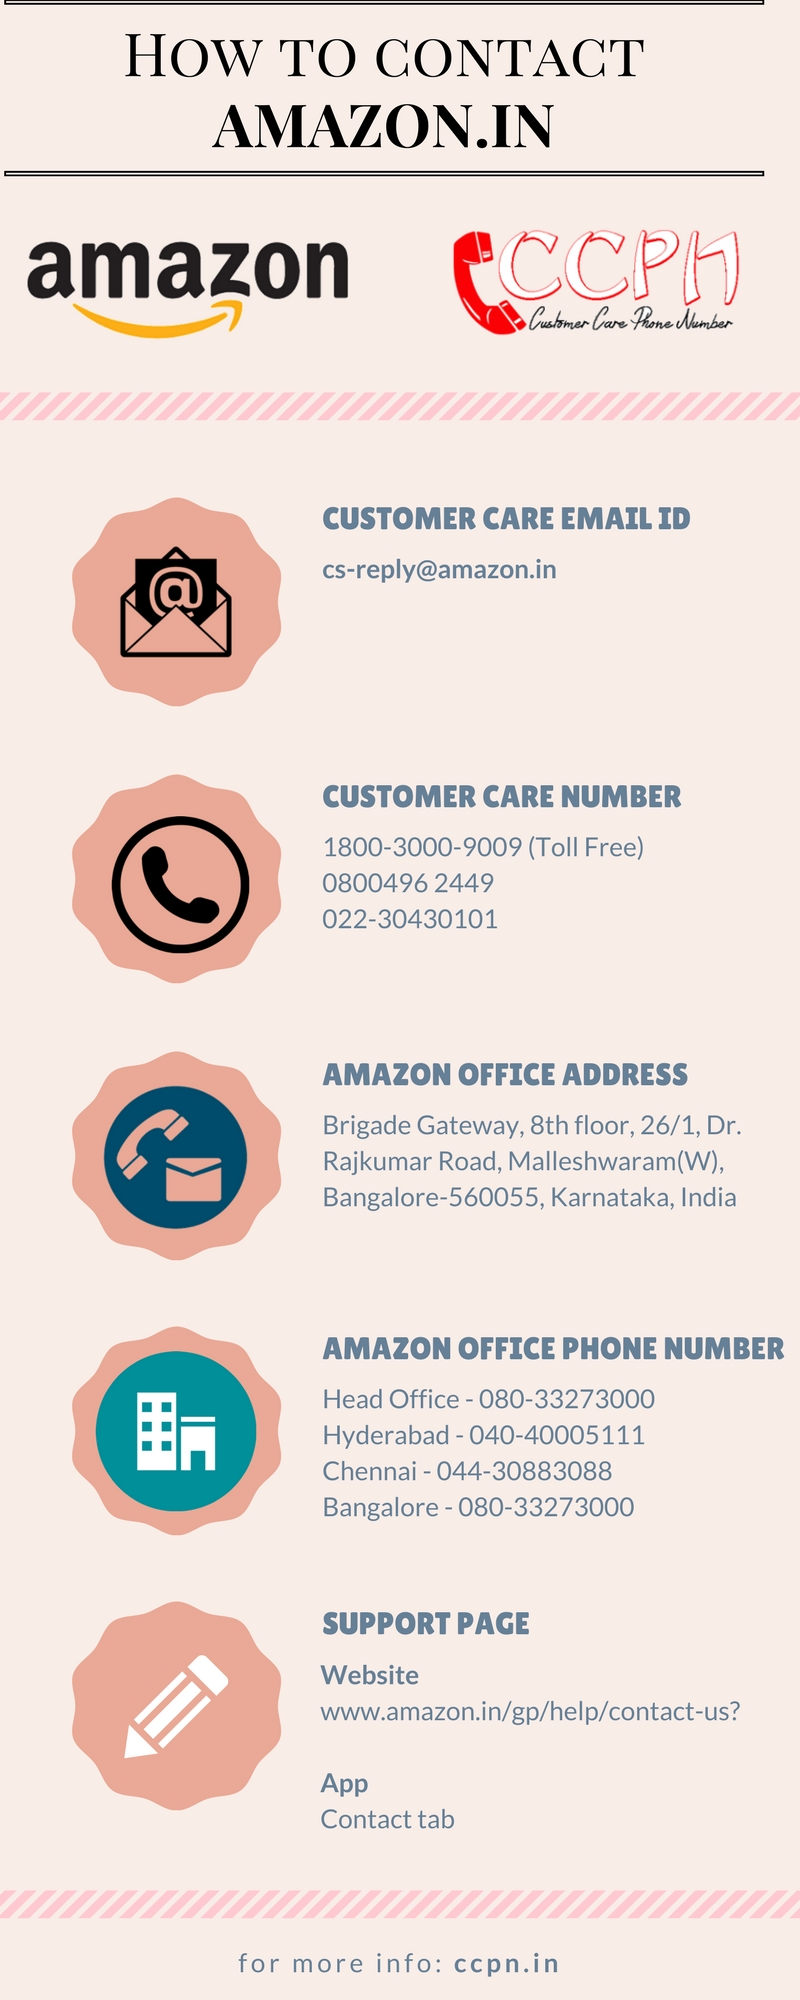 Amazon.in customer care numbers, toll free helpline number, email ID